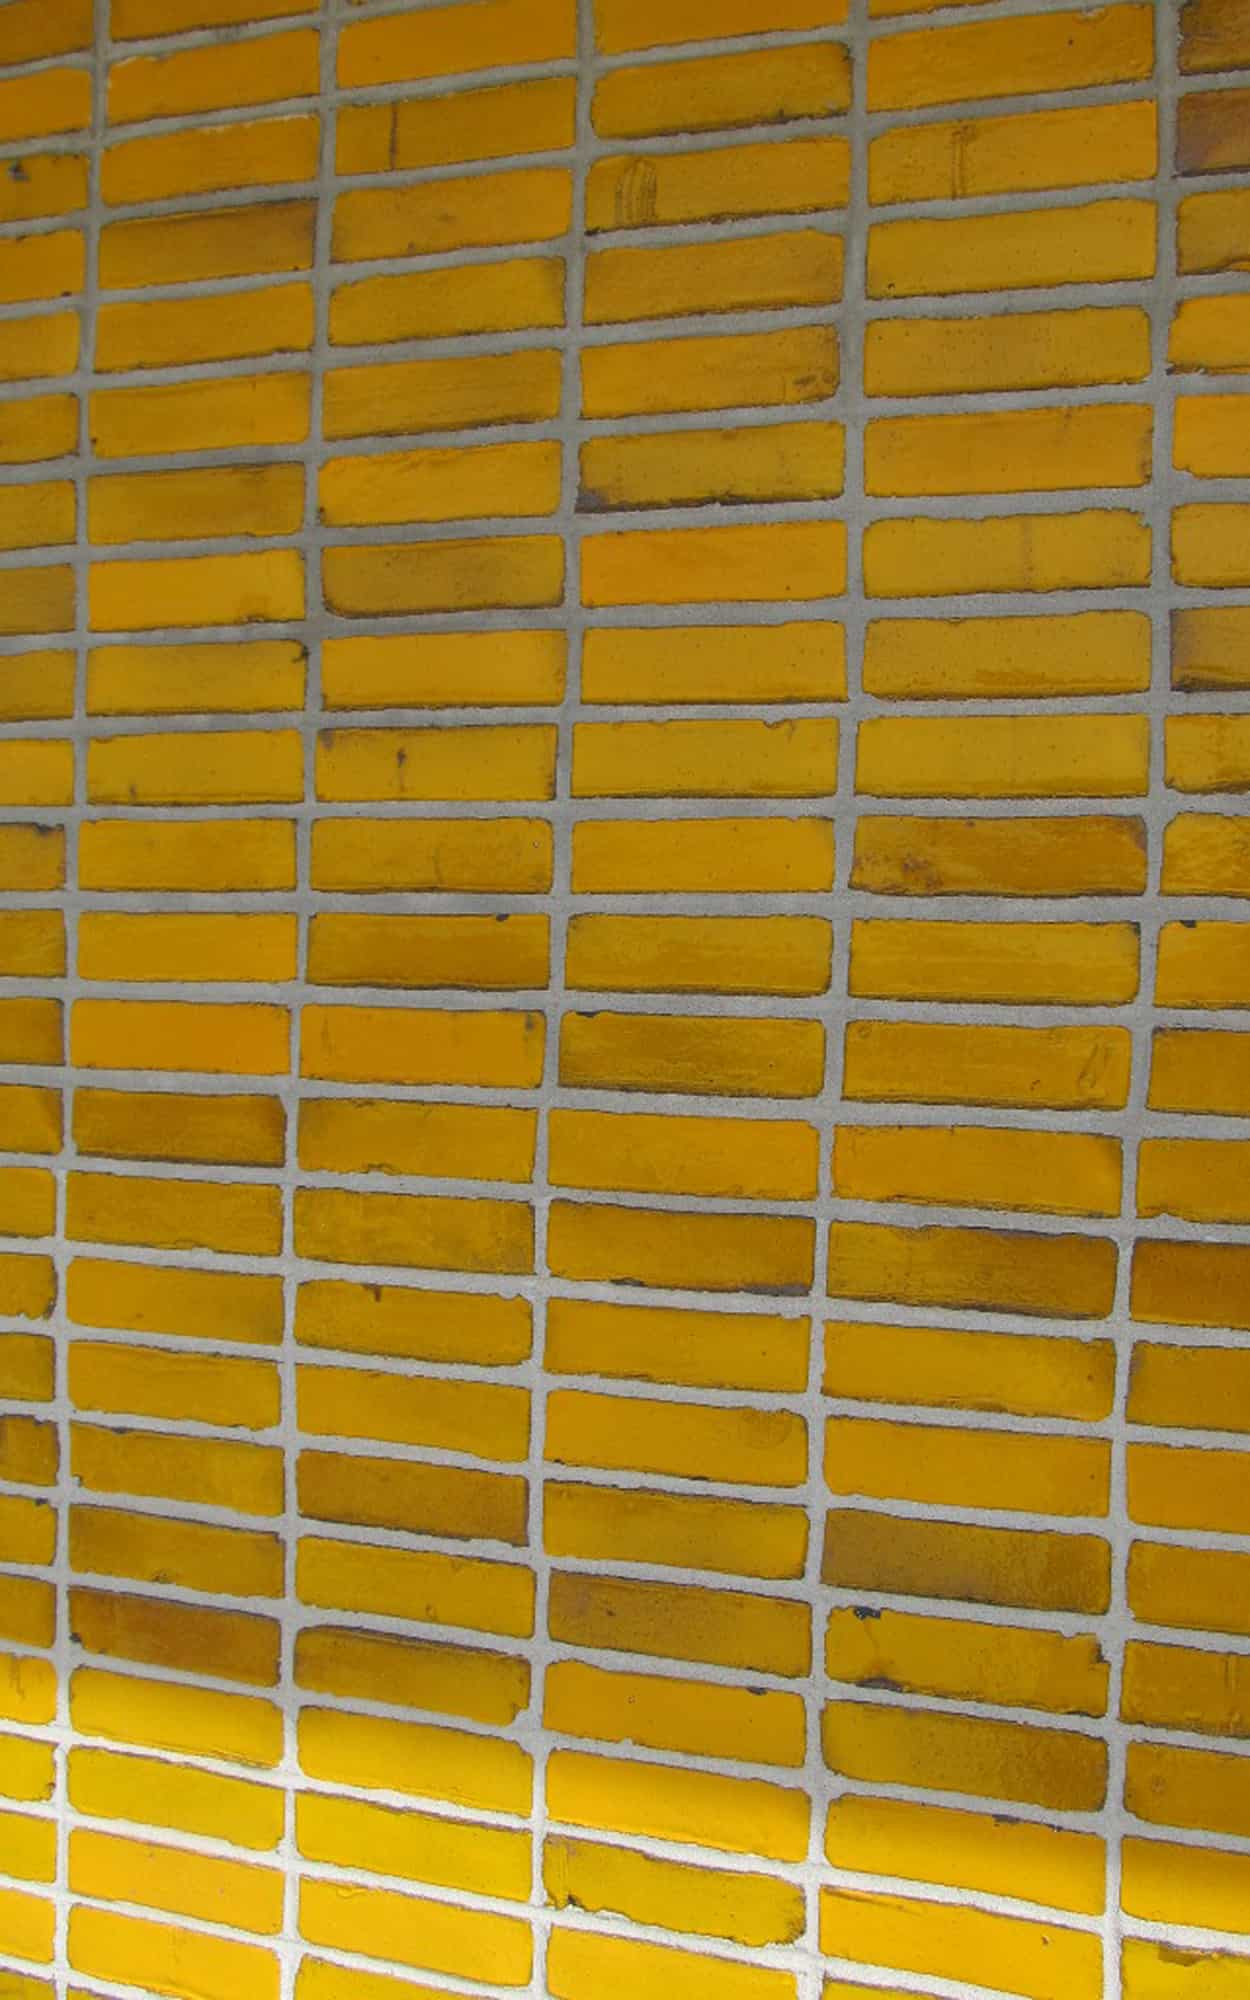 Yellow glazed brick wall, ground floor